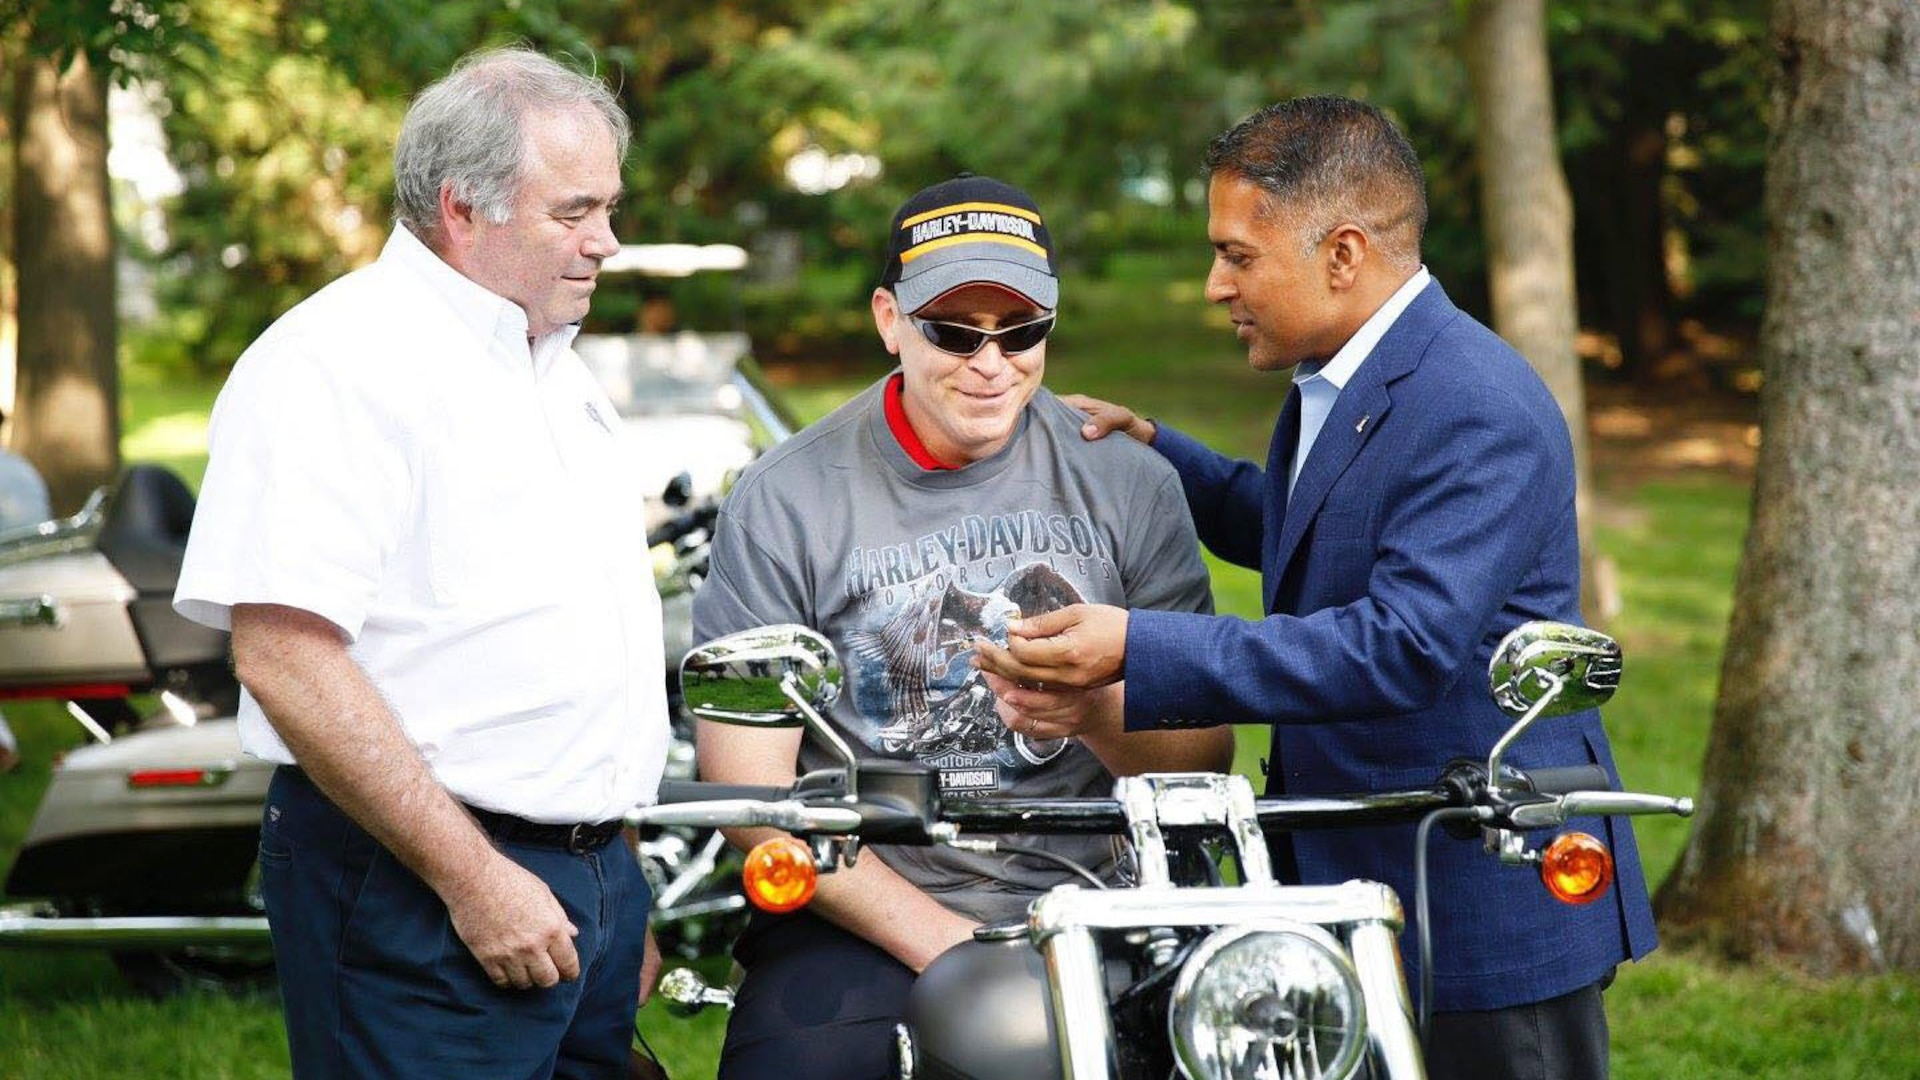 John Bryant, a quality assurance specialist with Defense Contract Management Agency International in Ottawa, Canada, is presented the keys to a Harley Davidson Breakout by Lynn Norton, left, dealer principal for Freedom Harley Davidson, Ottawa and Anoop Prakas, managing director for Harley Davidson Canada, July 4, 2016. The motorcycle was a gift from his wife after a successful battle against cancer. (Photo courtesy of Patrick Norton)